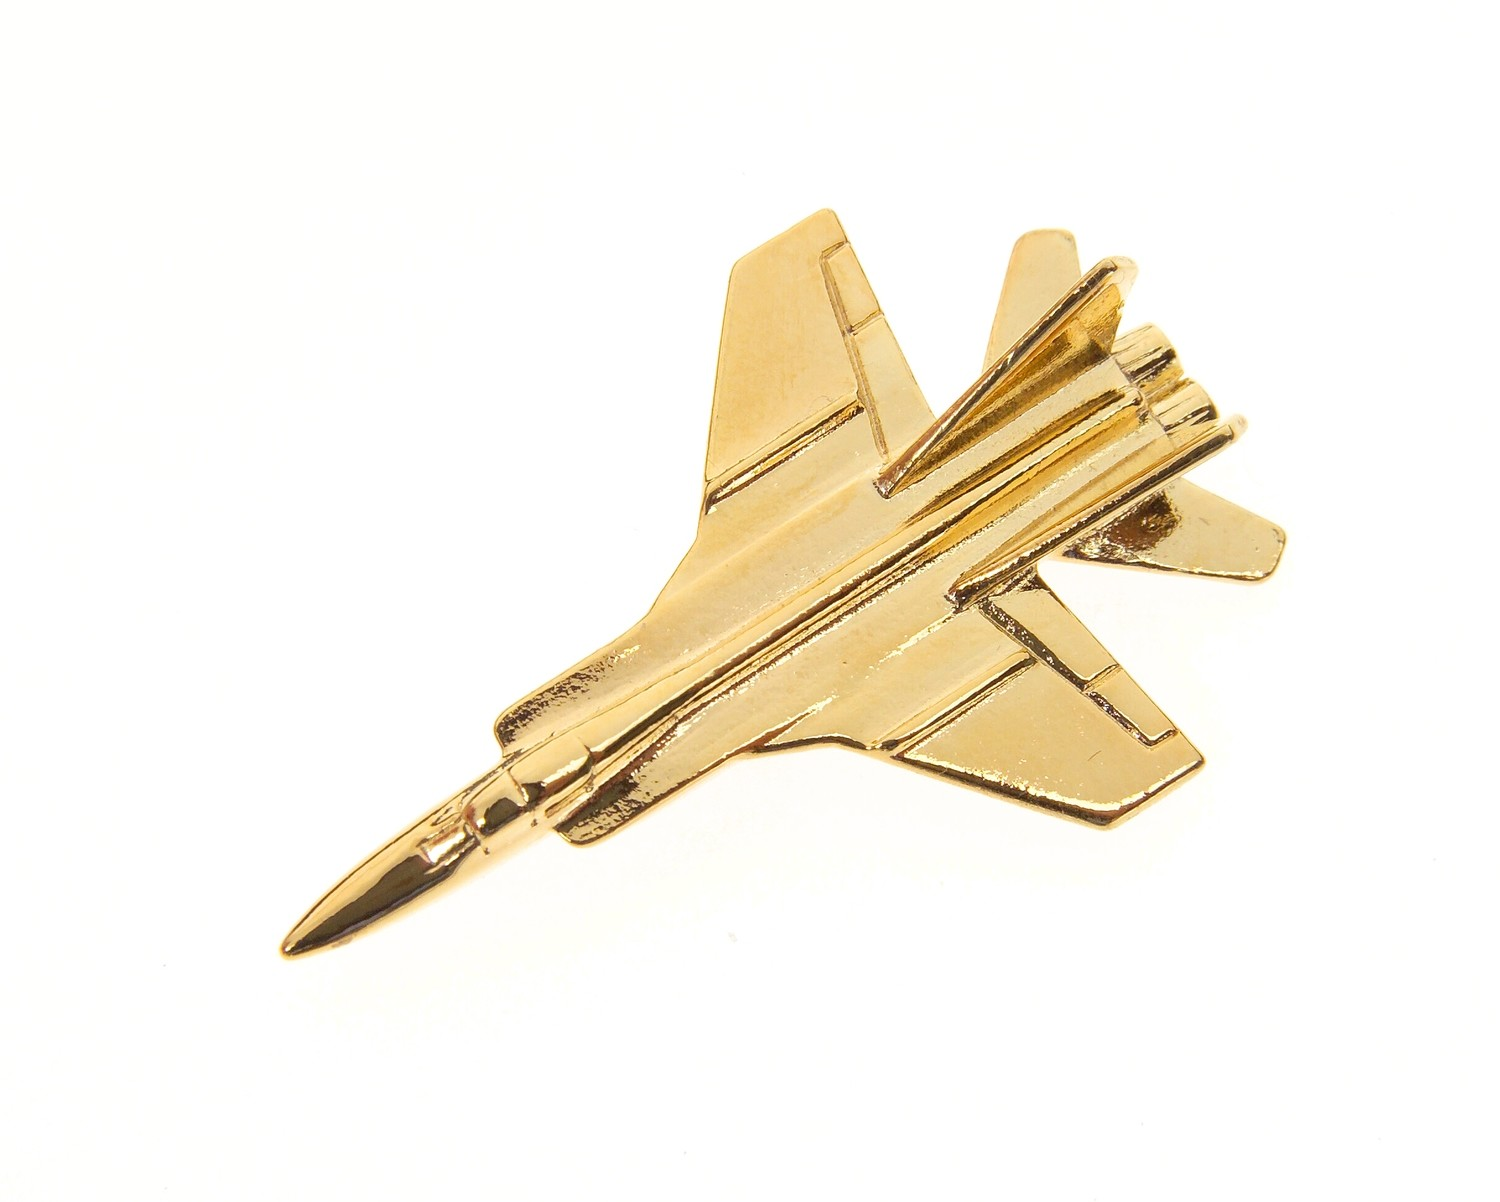 Mig 31 Foxhound Gold Plated Tie / Lapel Pin